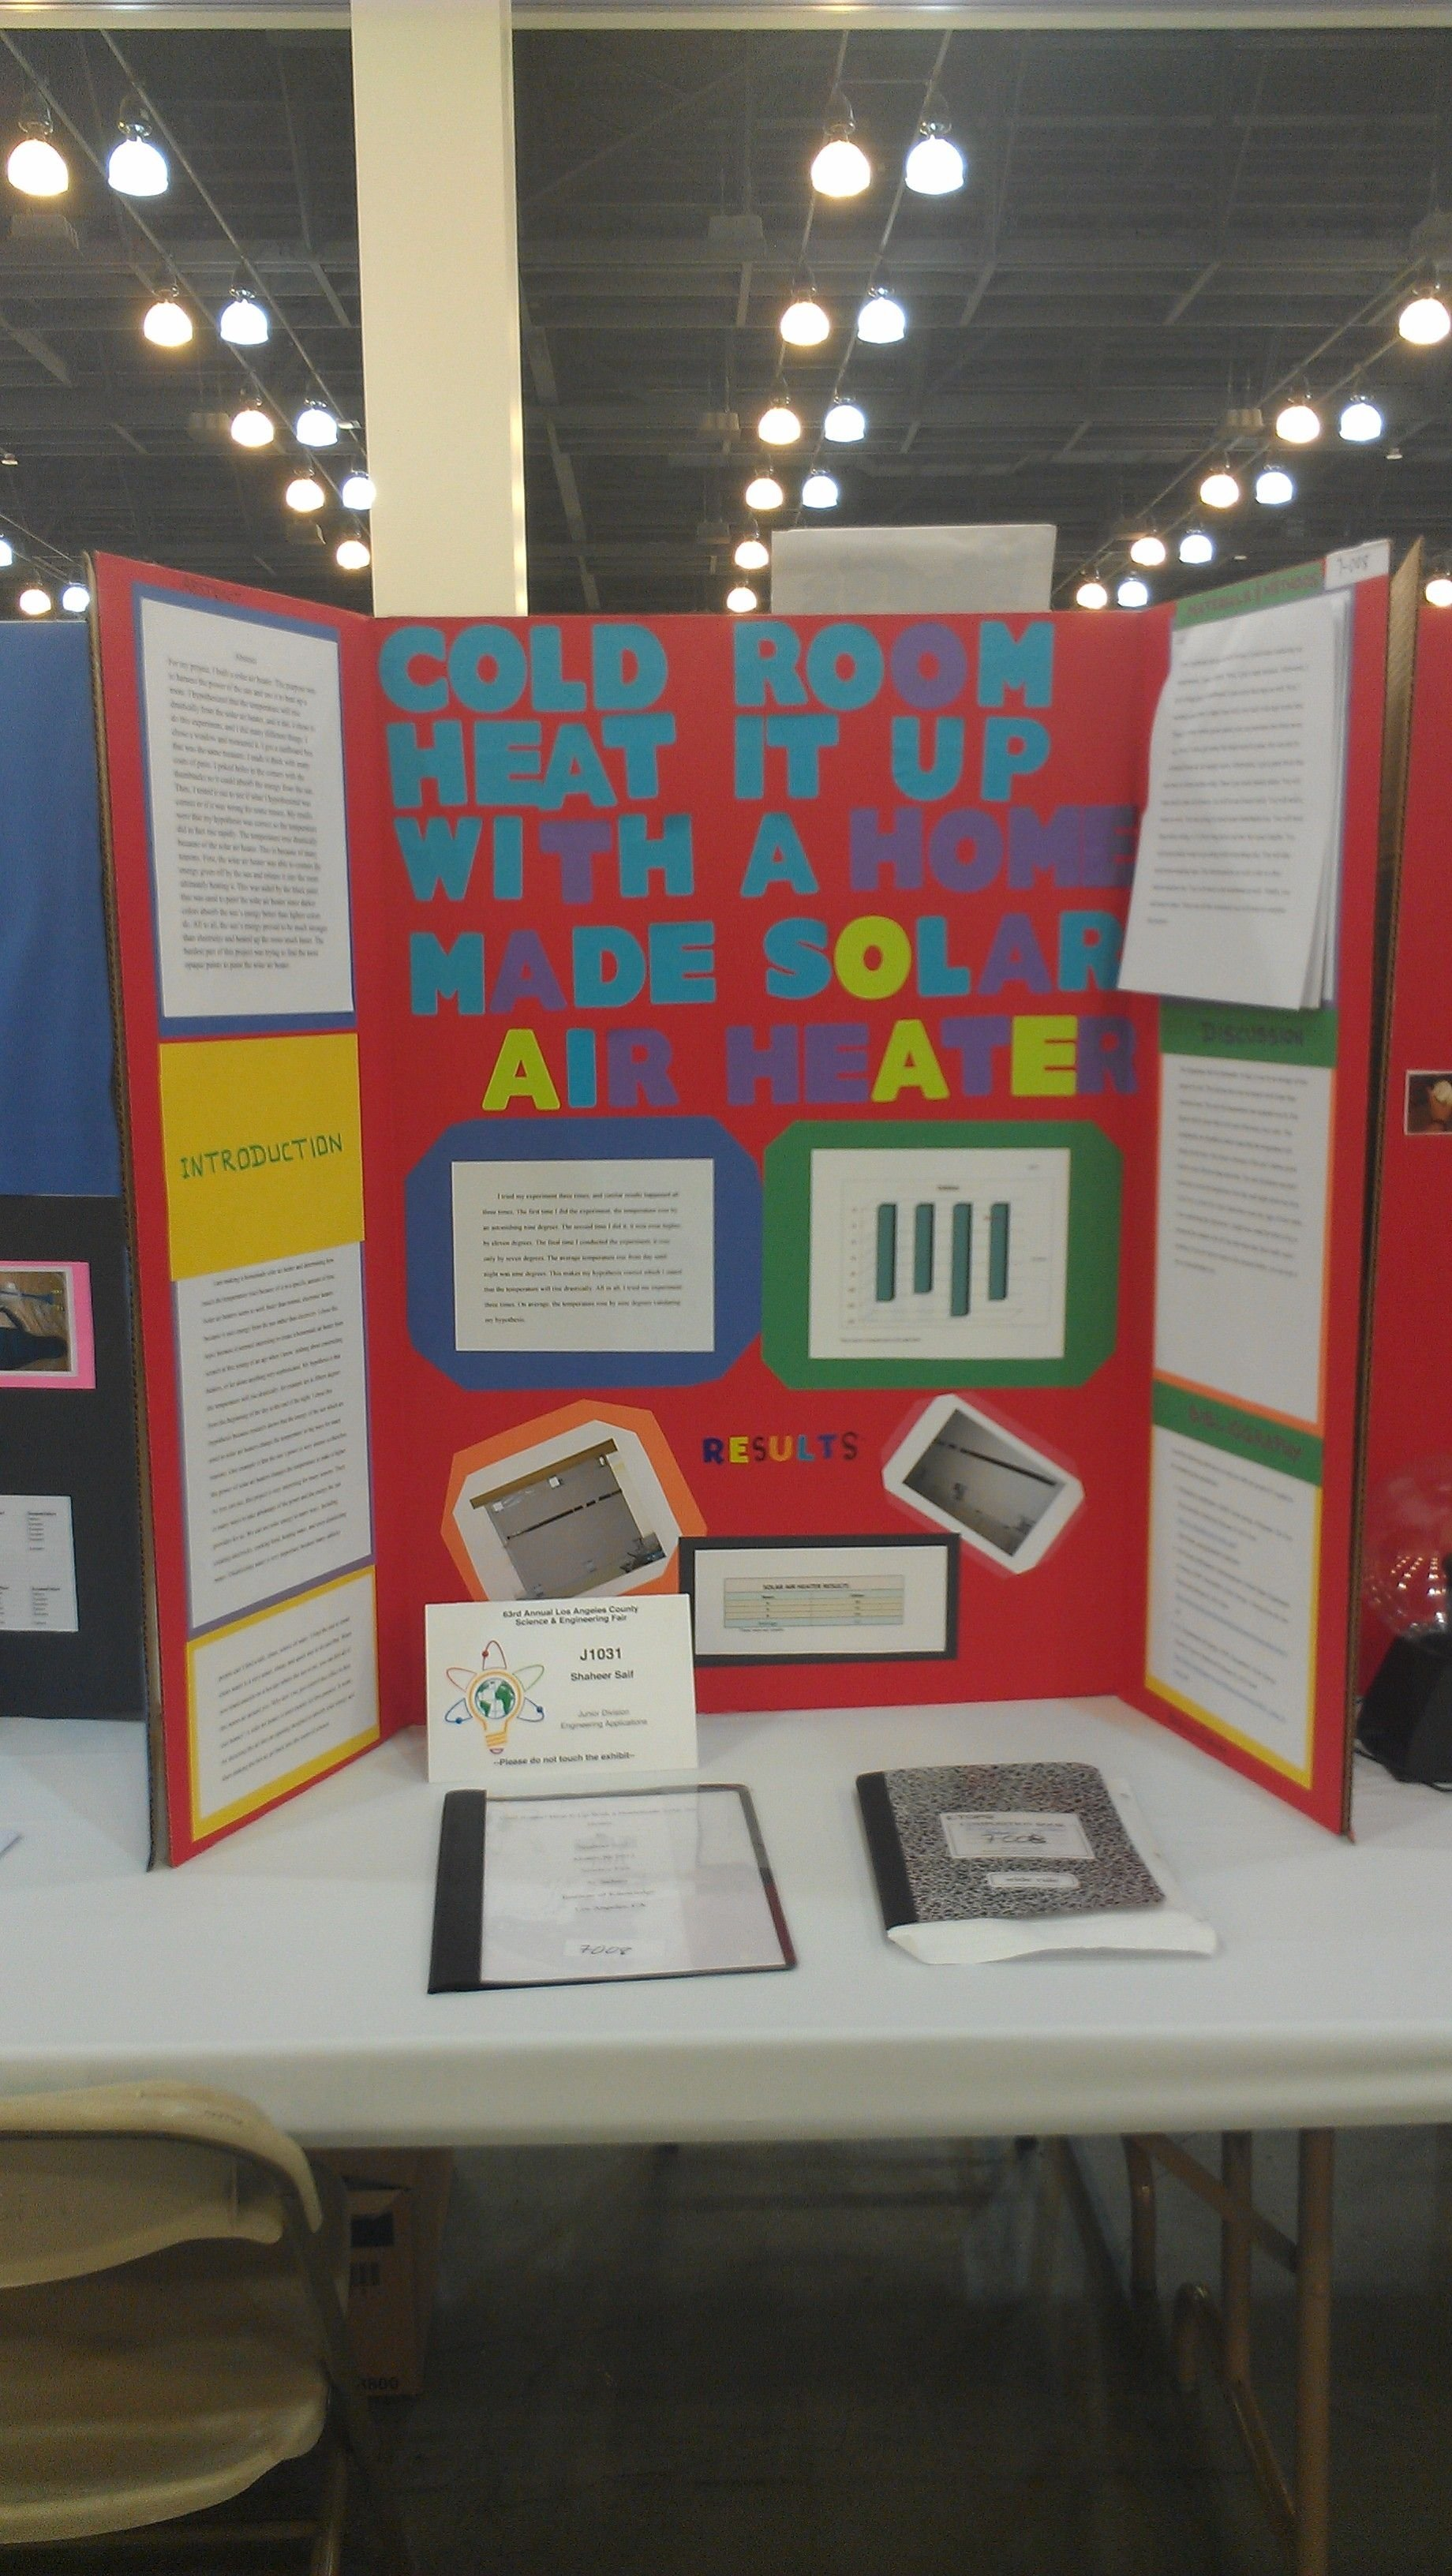 10 Stunning Testable Science Fair Project Ideas 7th grade science fair project on a solar heater built and designed 1 2020